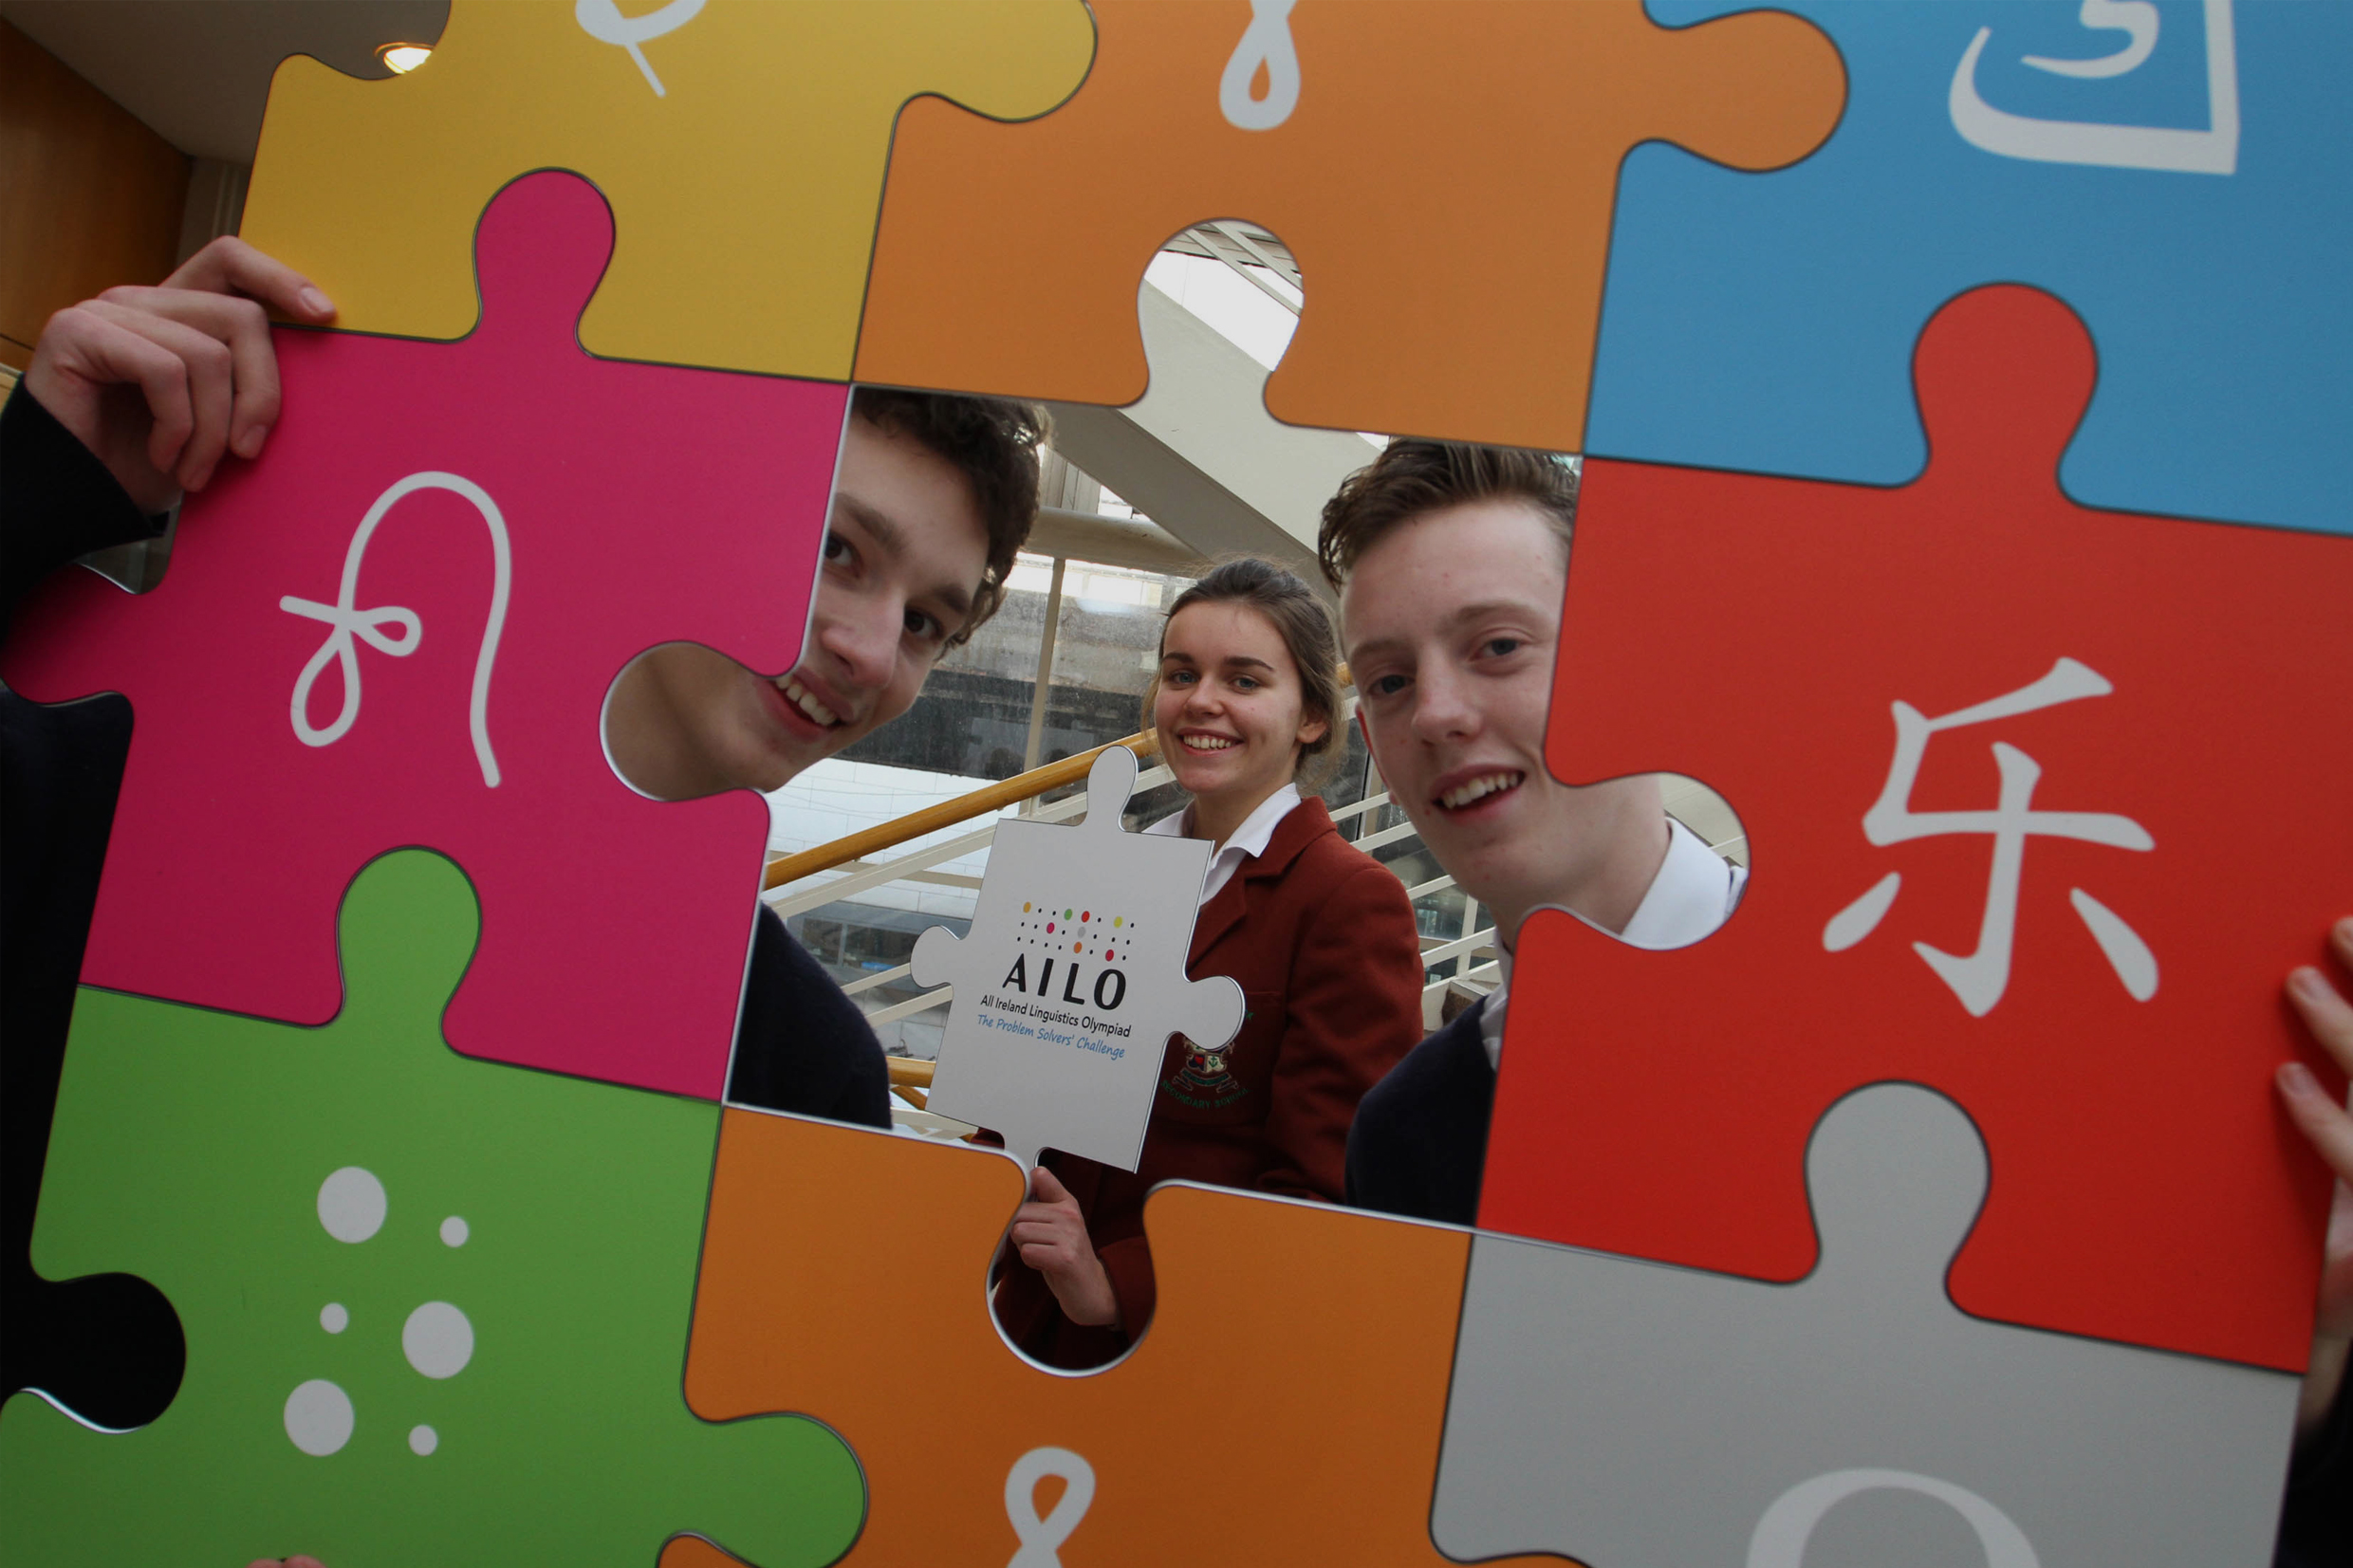 Register Now for the All Ireland Linguistics Olympiad 2017